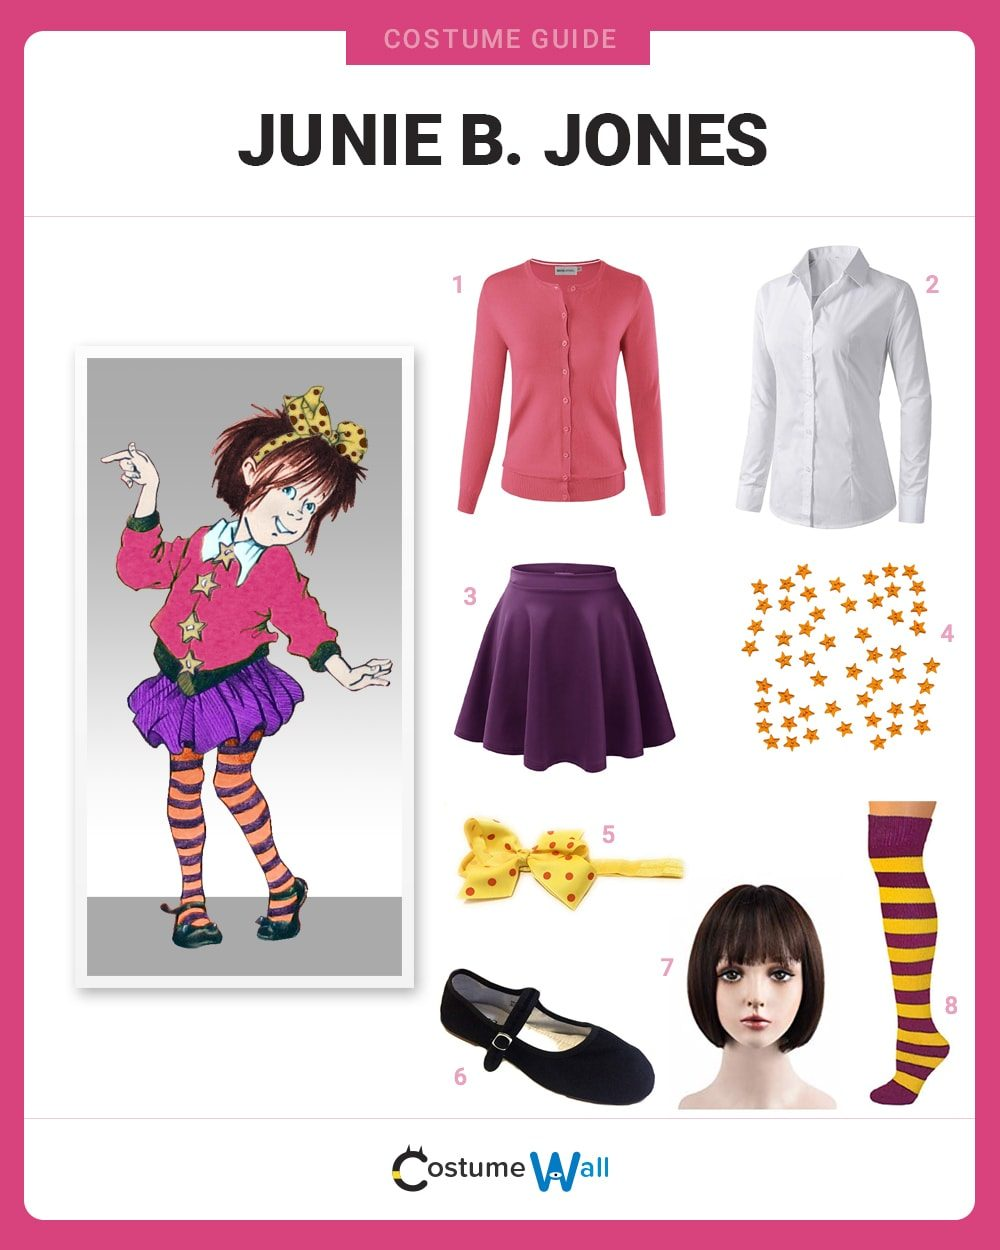 Junie B. Jones Costume Guide